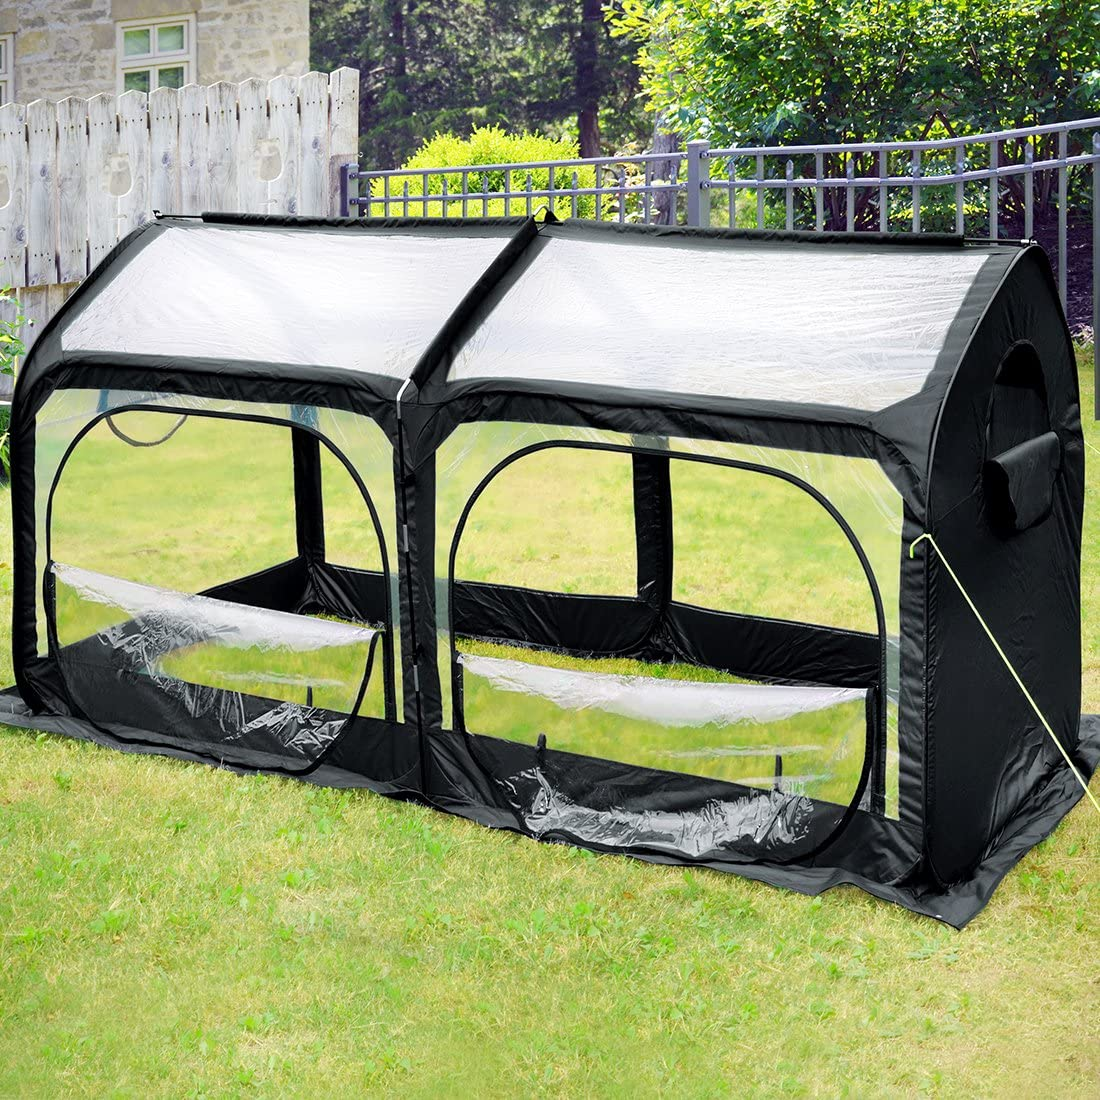 Quictent Pop up Greenhouse Passed SGS Test Eco-Friendly Fiberglass Poles Overlong Cover 6 Stakes 98 x 49 x 53 Inches Mini Portable Green House W 4 Zipper Doors Black